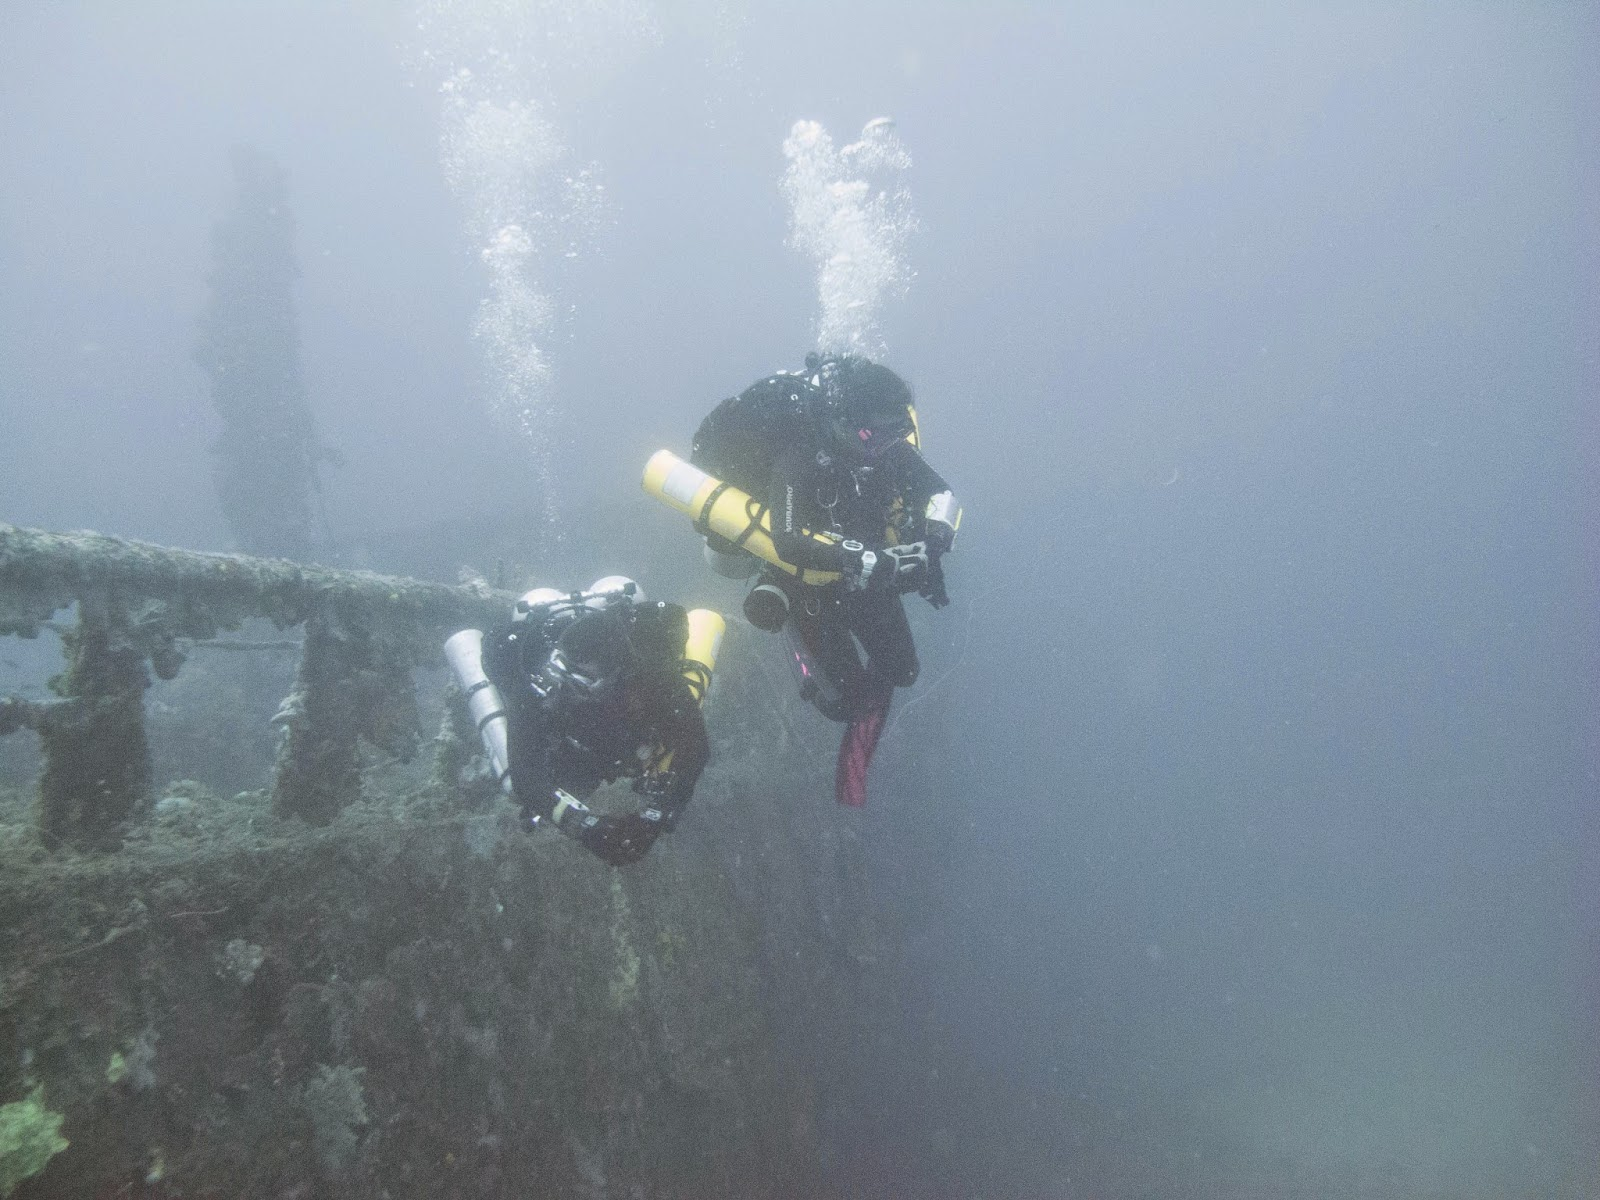 The world war 2 wreck presumed to be the Oakita maru, just north of Malapascua and frequently dived by Exotic